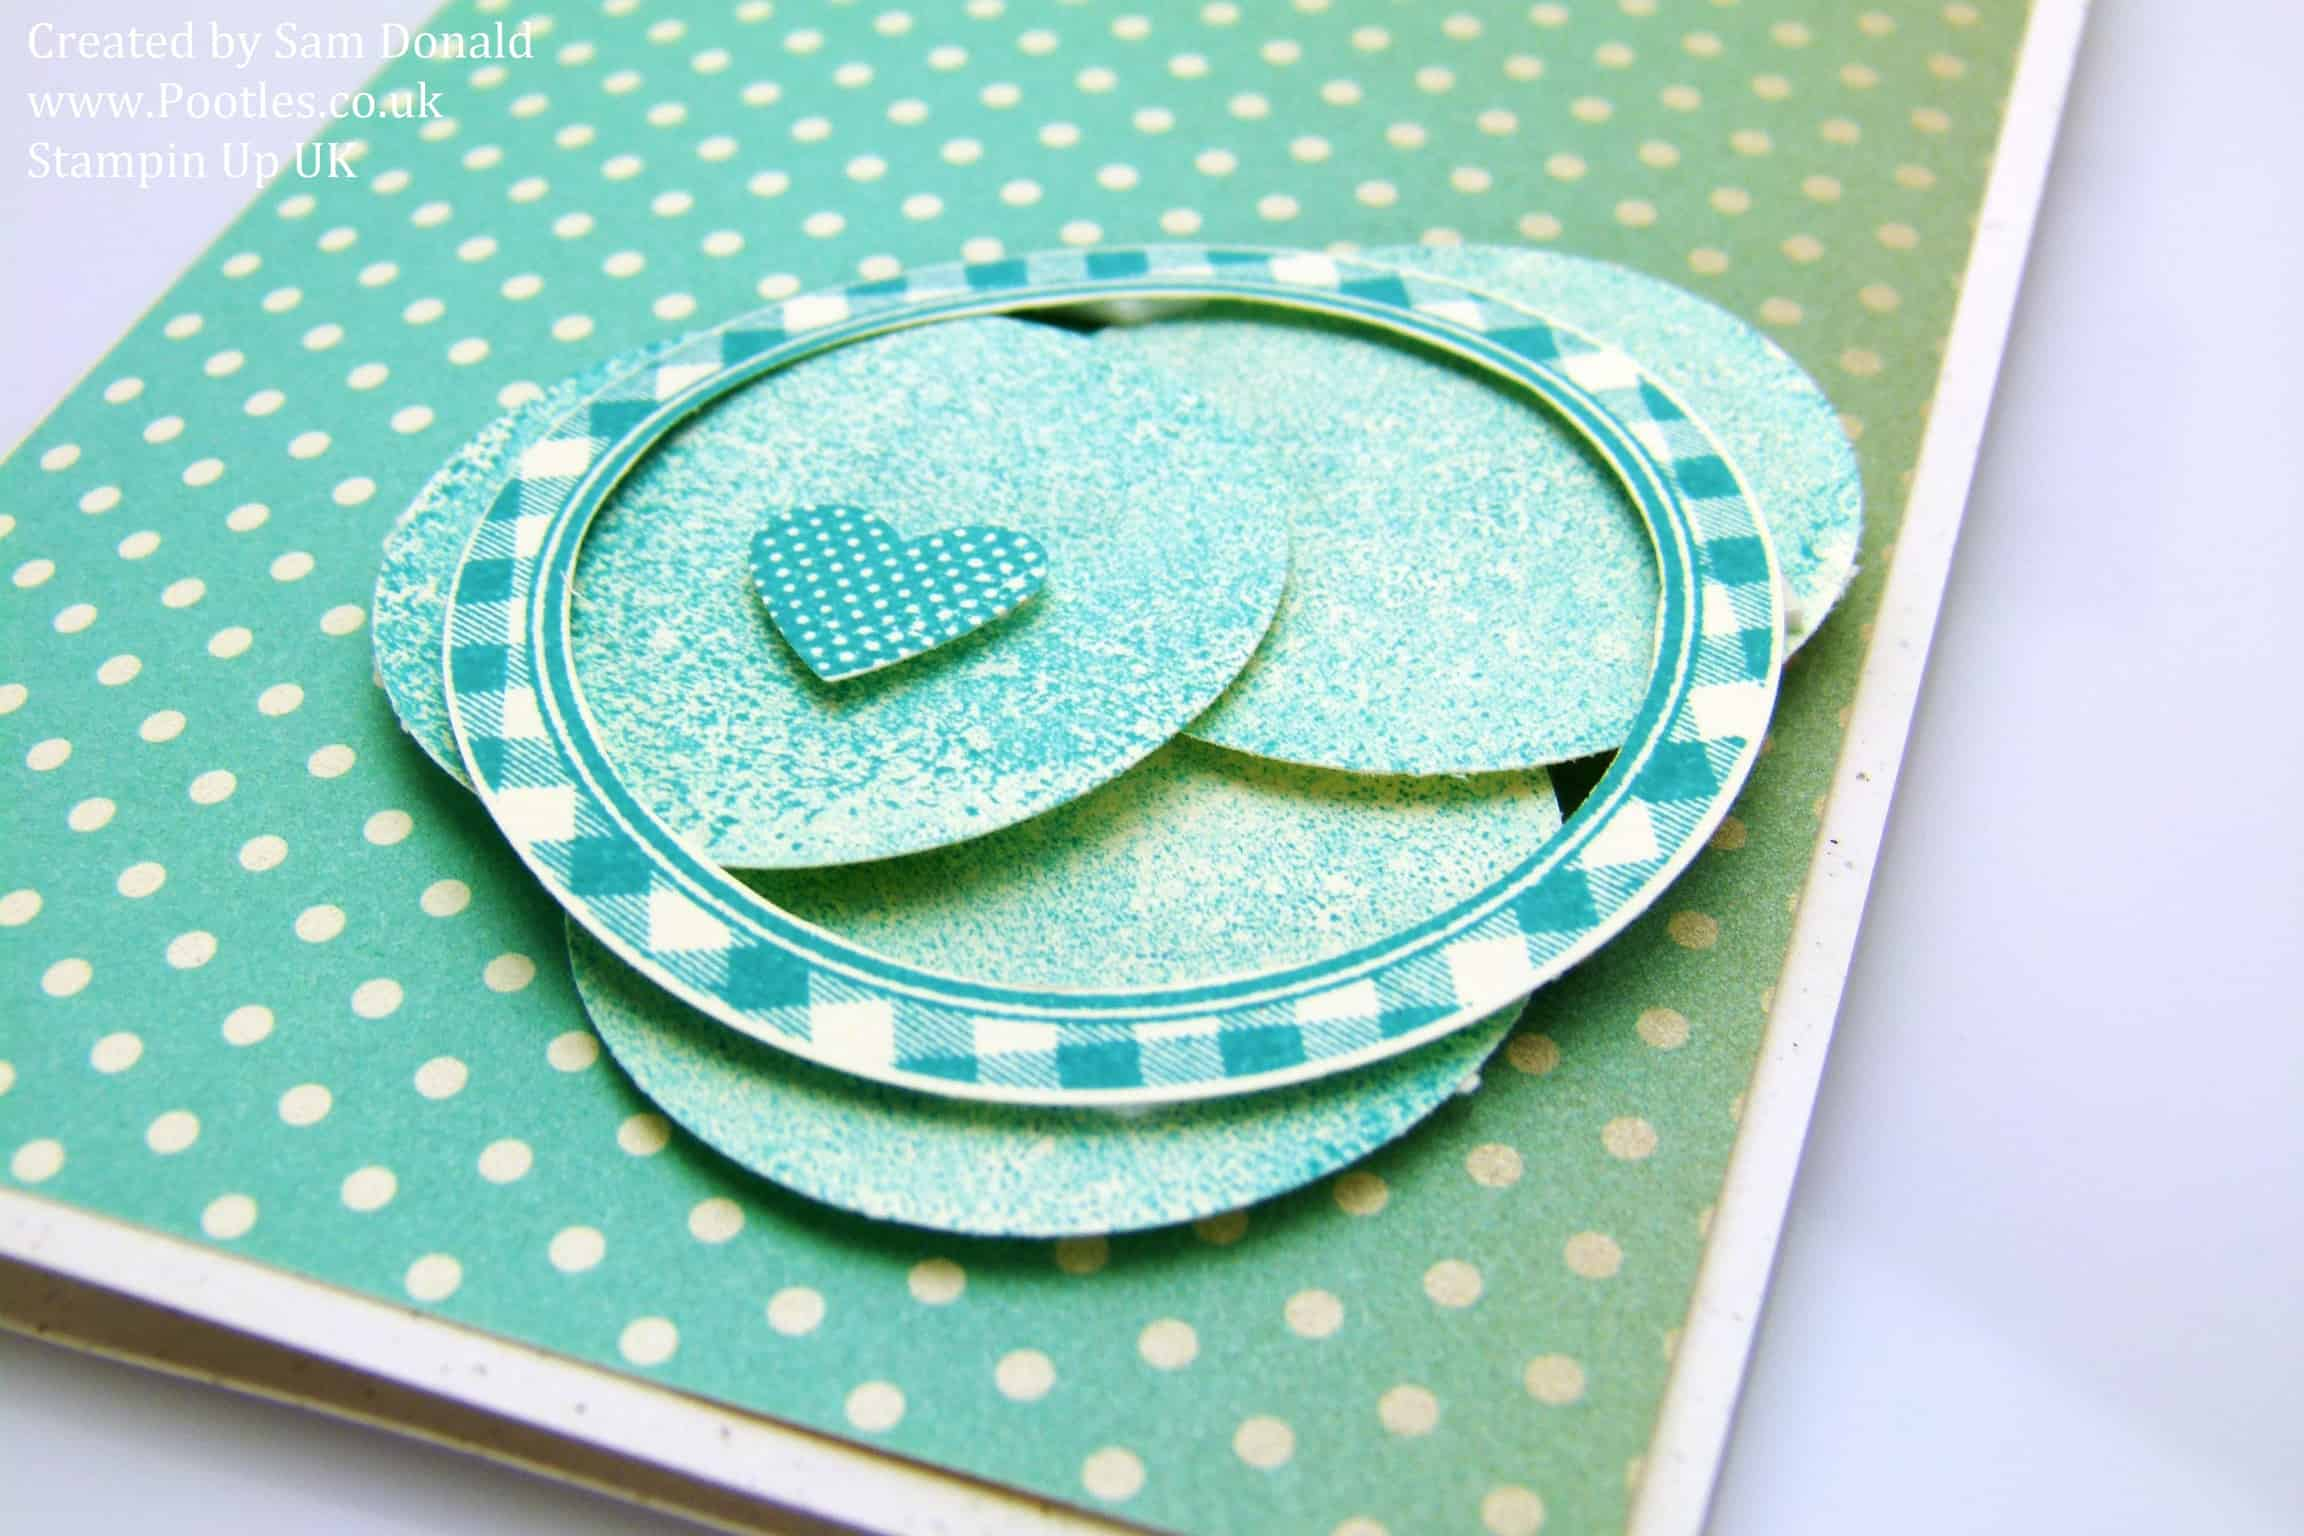 Stampin' Up! UK Bermuda Bay Afternoon Picnic